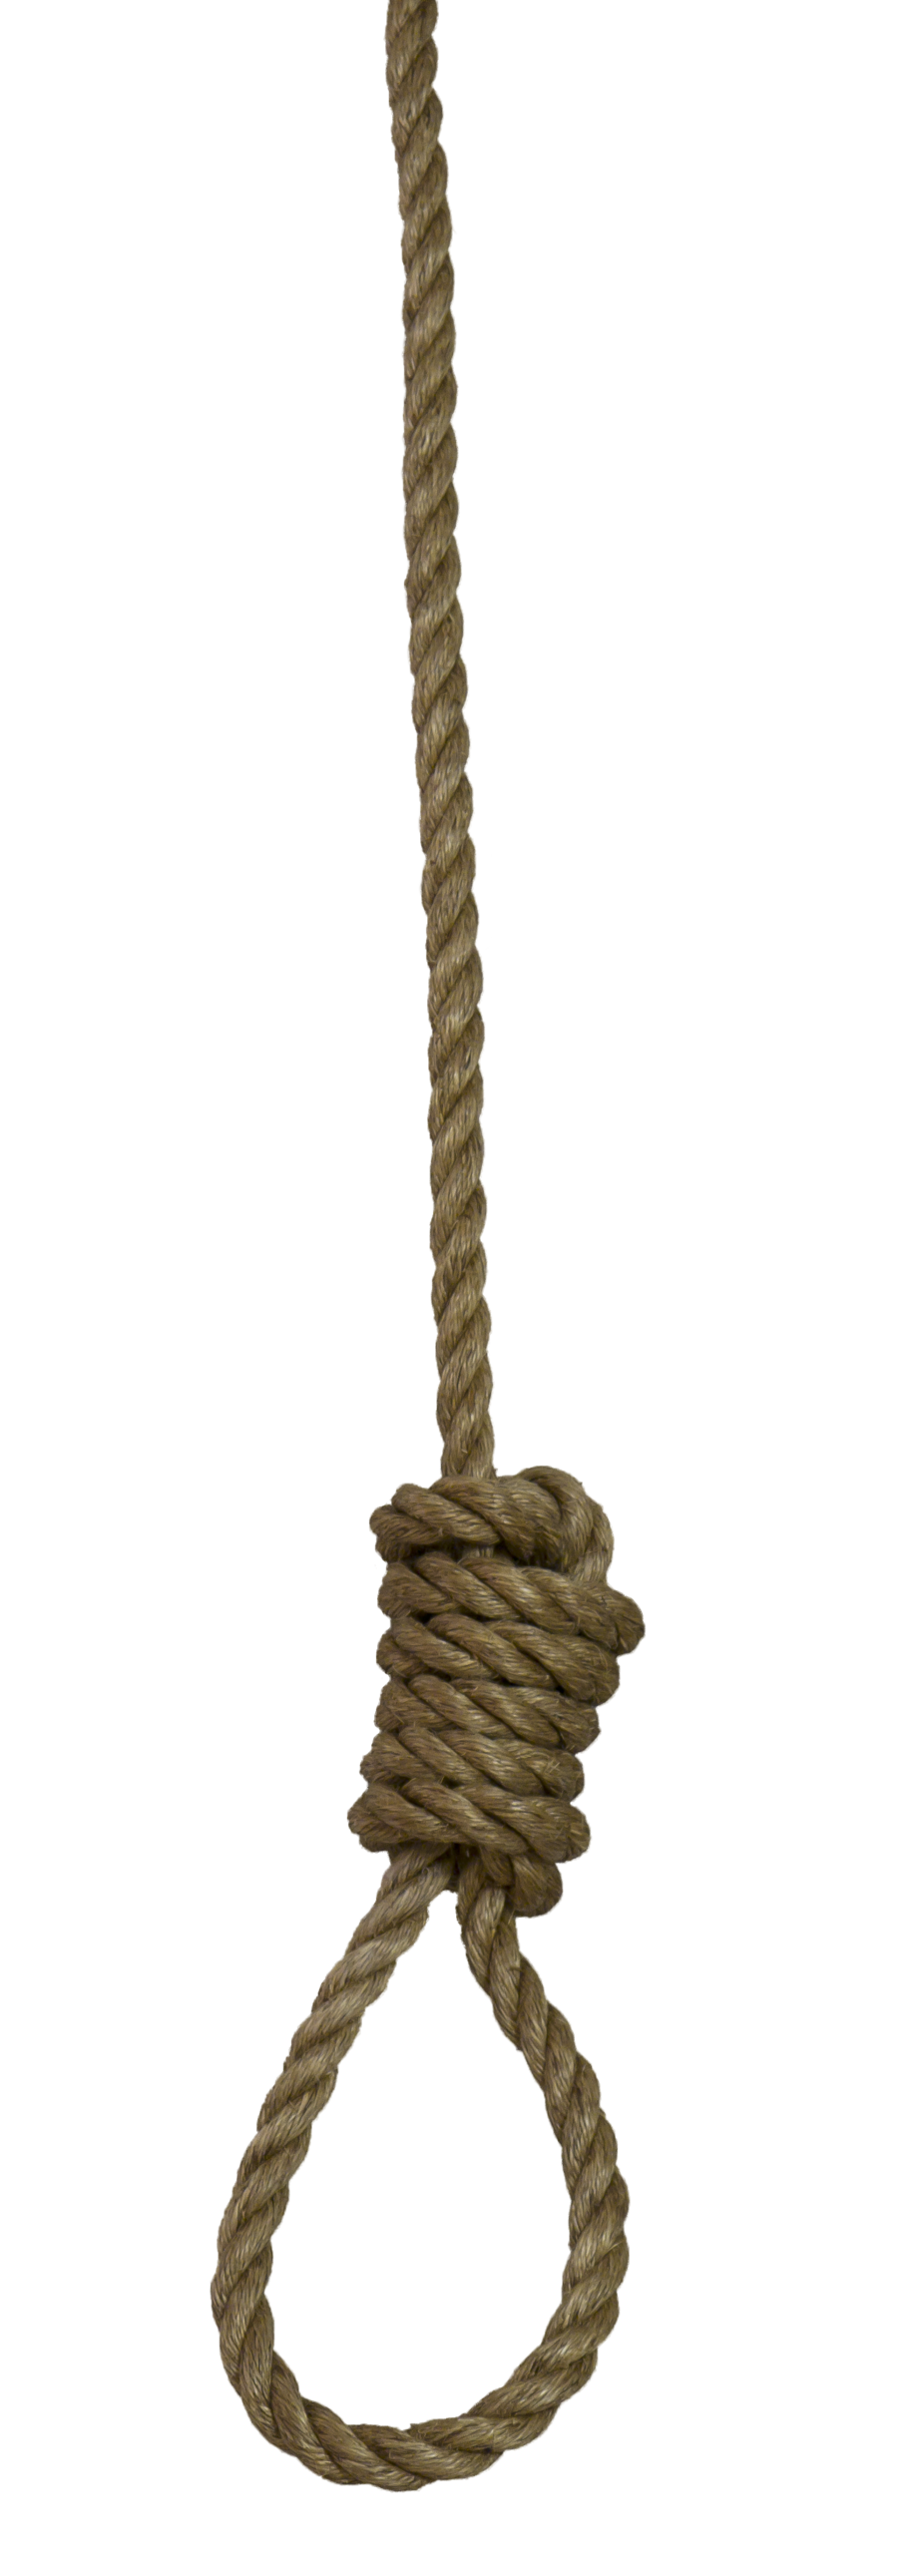 Vector Png Noose image #35243